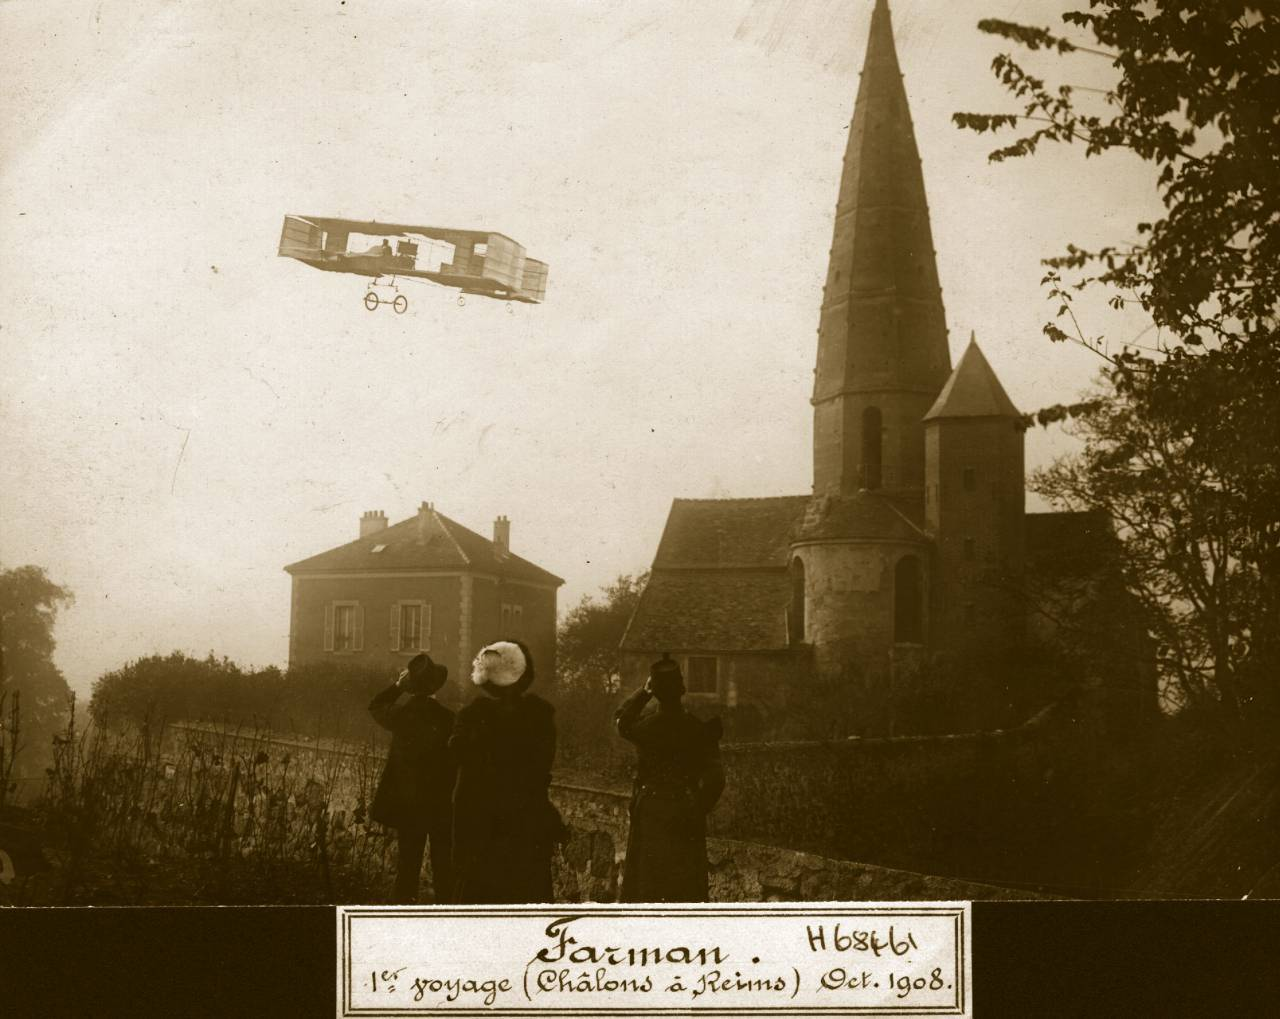 31st October 1908: French aviation pioneer Henri Farman (1874 - 1958) flying over a small village near Reims during his European cross country record flight of 26 kilometres from Chalons to Reims. He is flying a Voisin box-kite aeroplane and is making Europe?s first cross-country flight. Aeroplane Album - Vol 2 Page 9